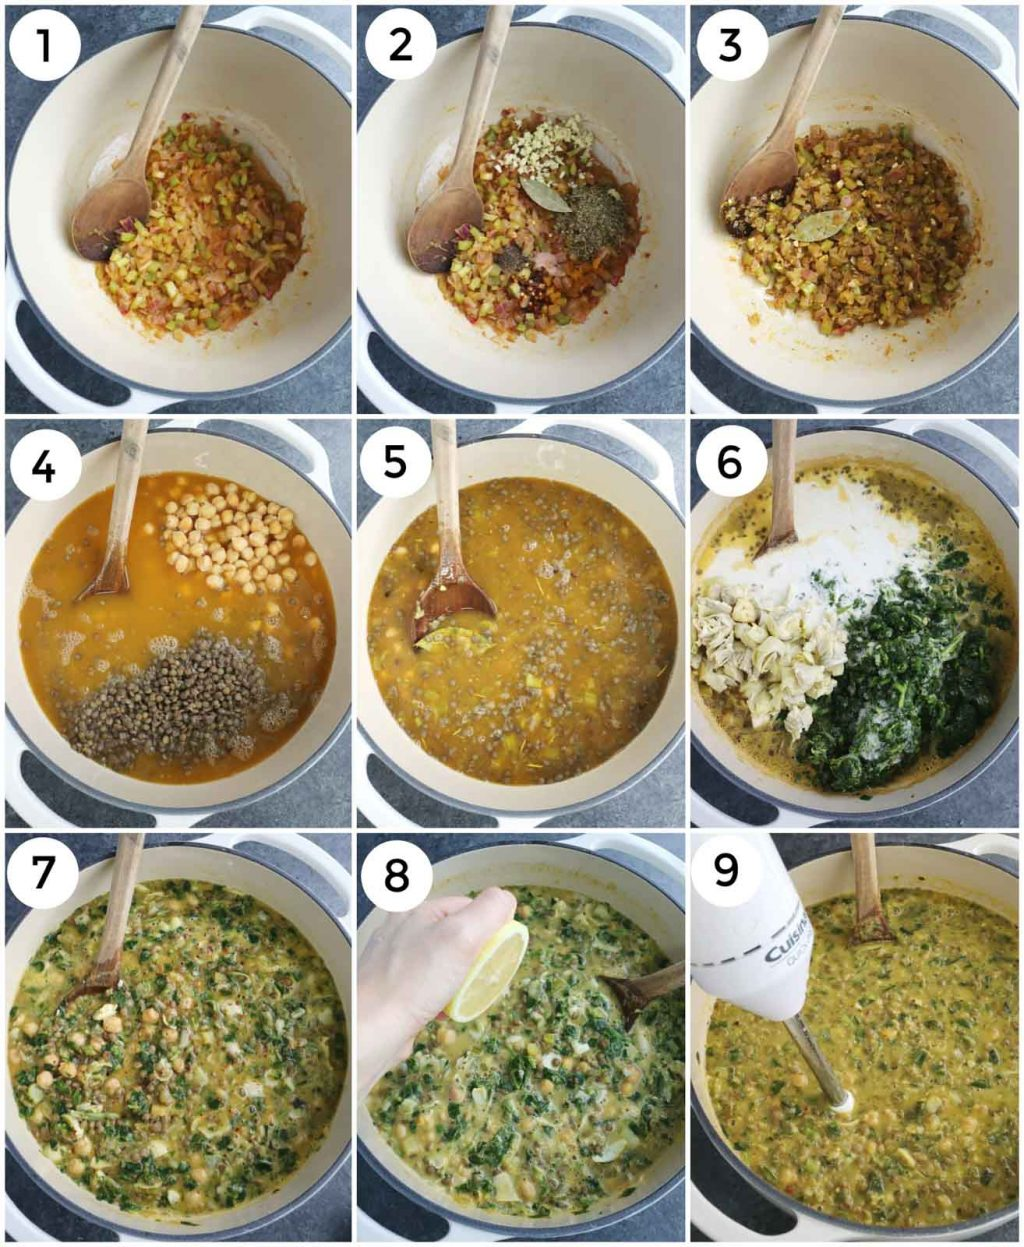 A photo collage showing how to make chickpea soup step by step.